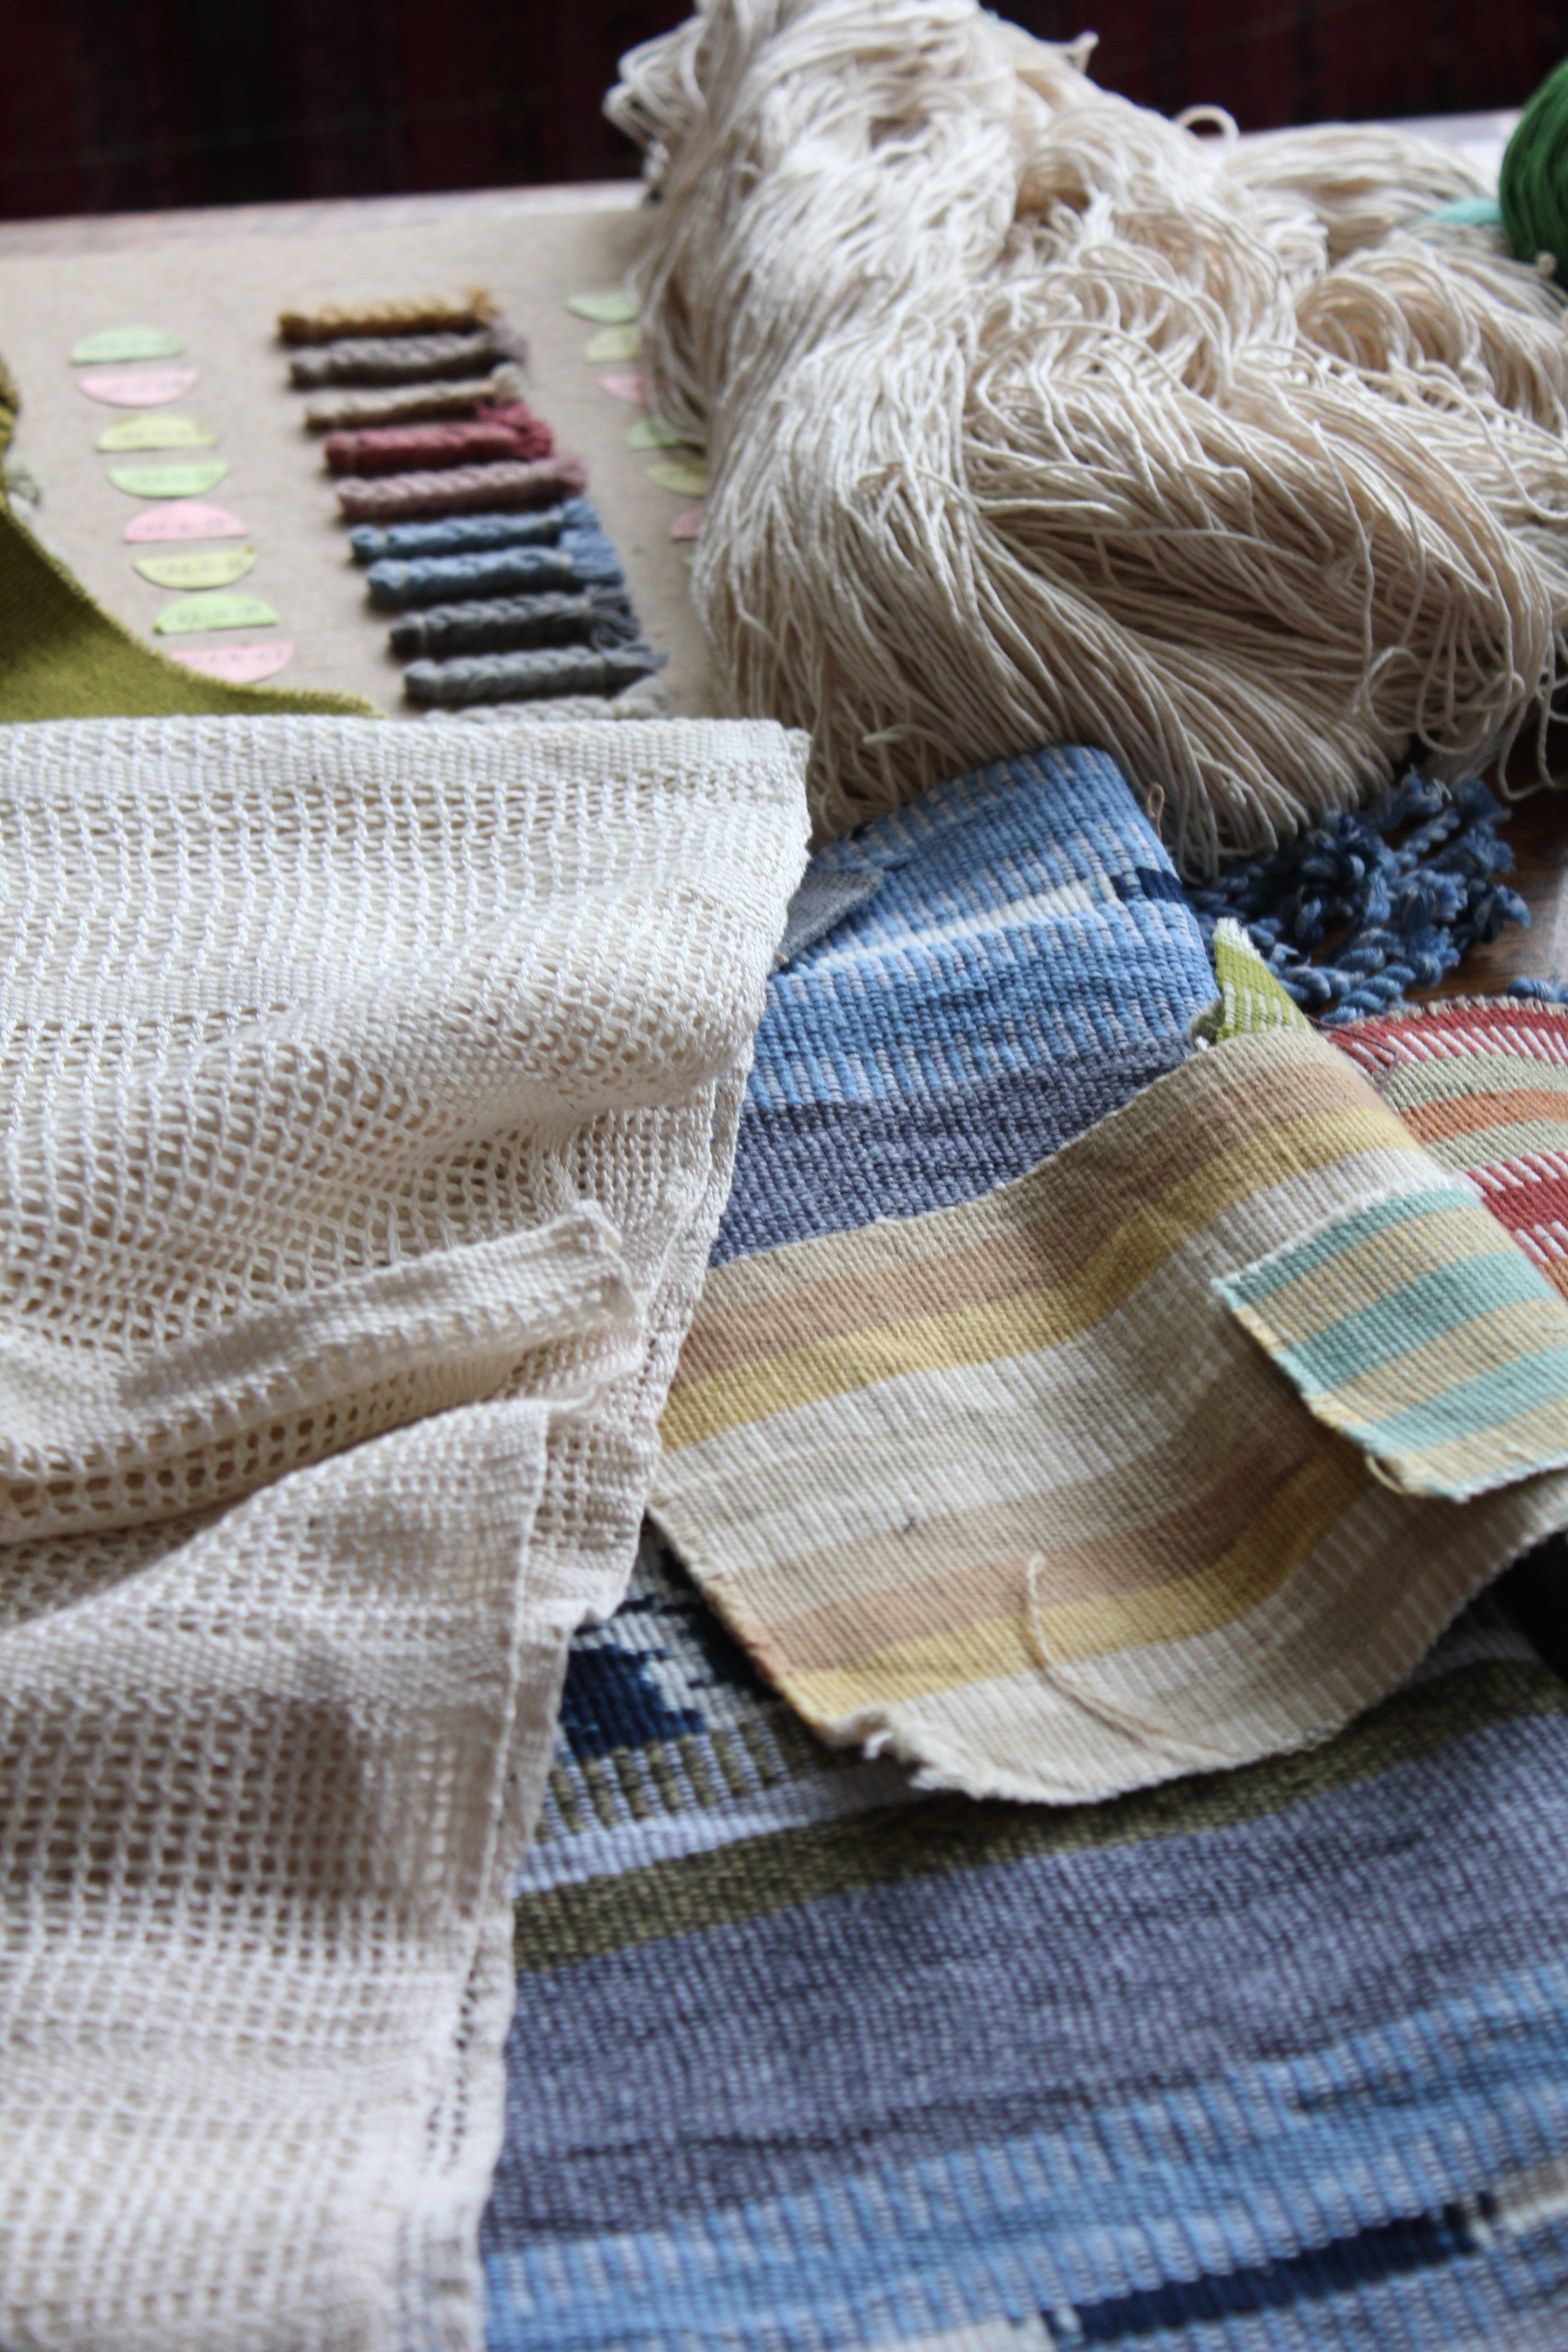 Fabrics created by Living Threads Co. partners in Guatemala on mayan backstrap loom